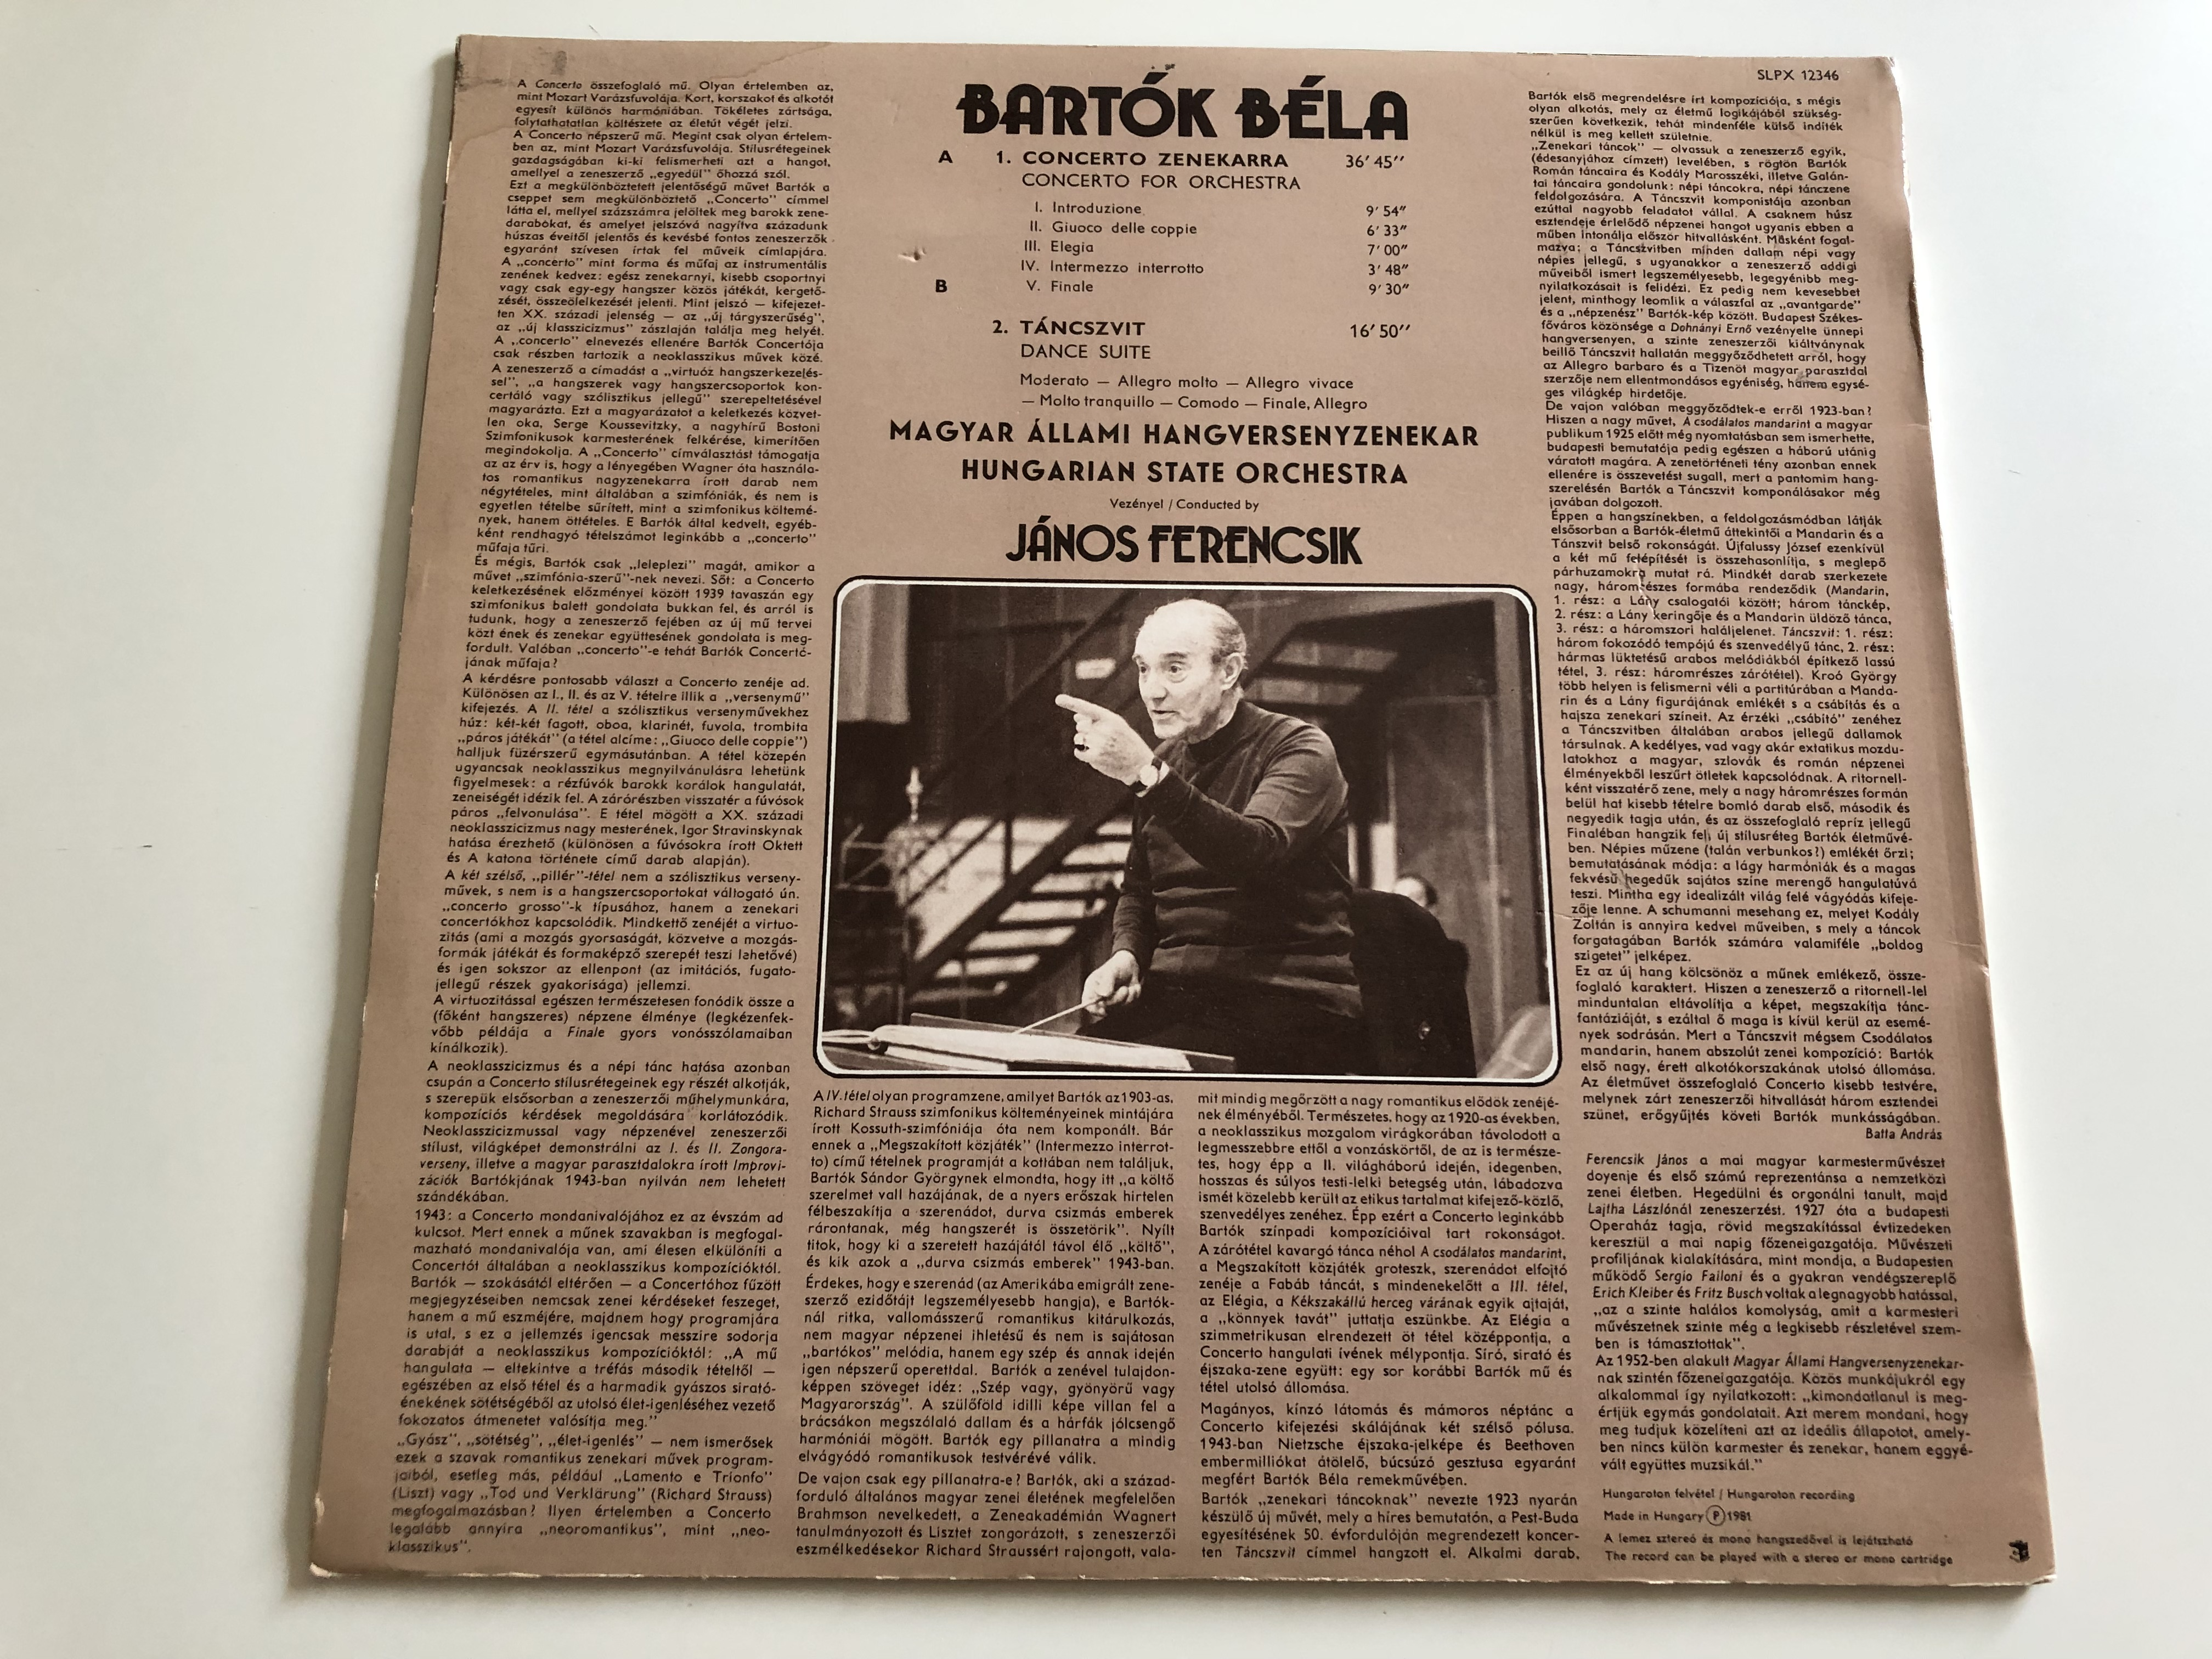 bart-k-b-la-concerto-dance-suite-hungarian-state-orchestra-conducted-j-nos-ferencsik-hungaroton-lp-stereo-slpx-12346-2-.jpg